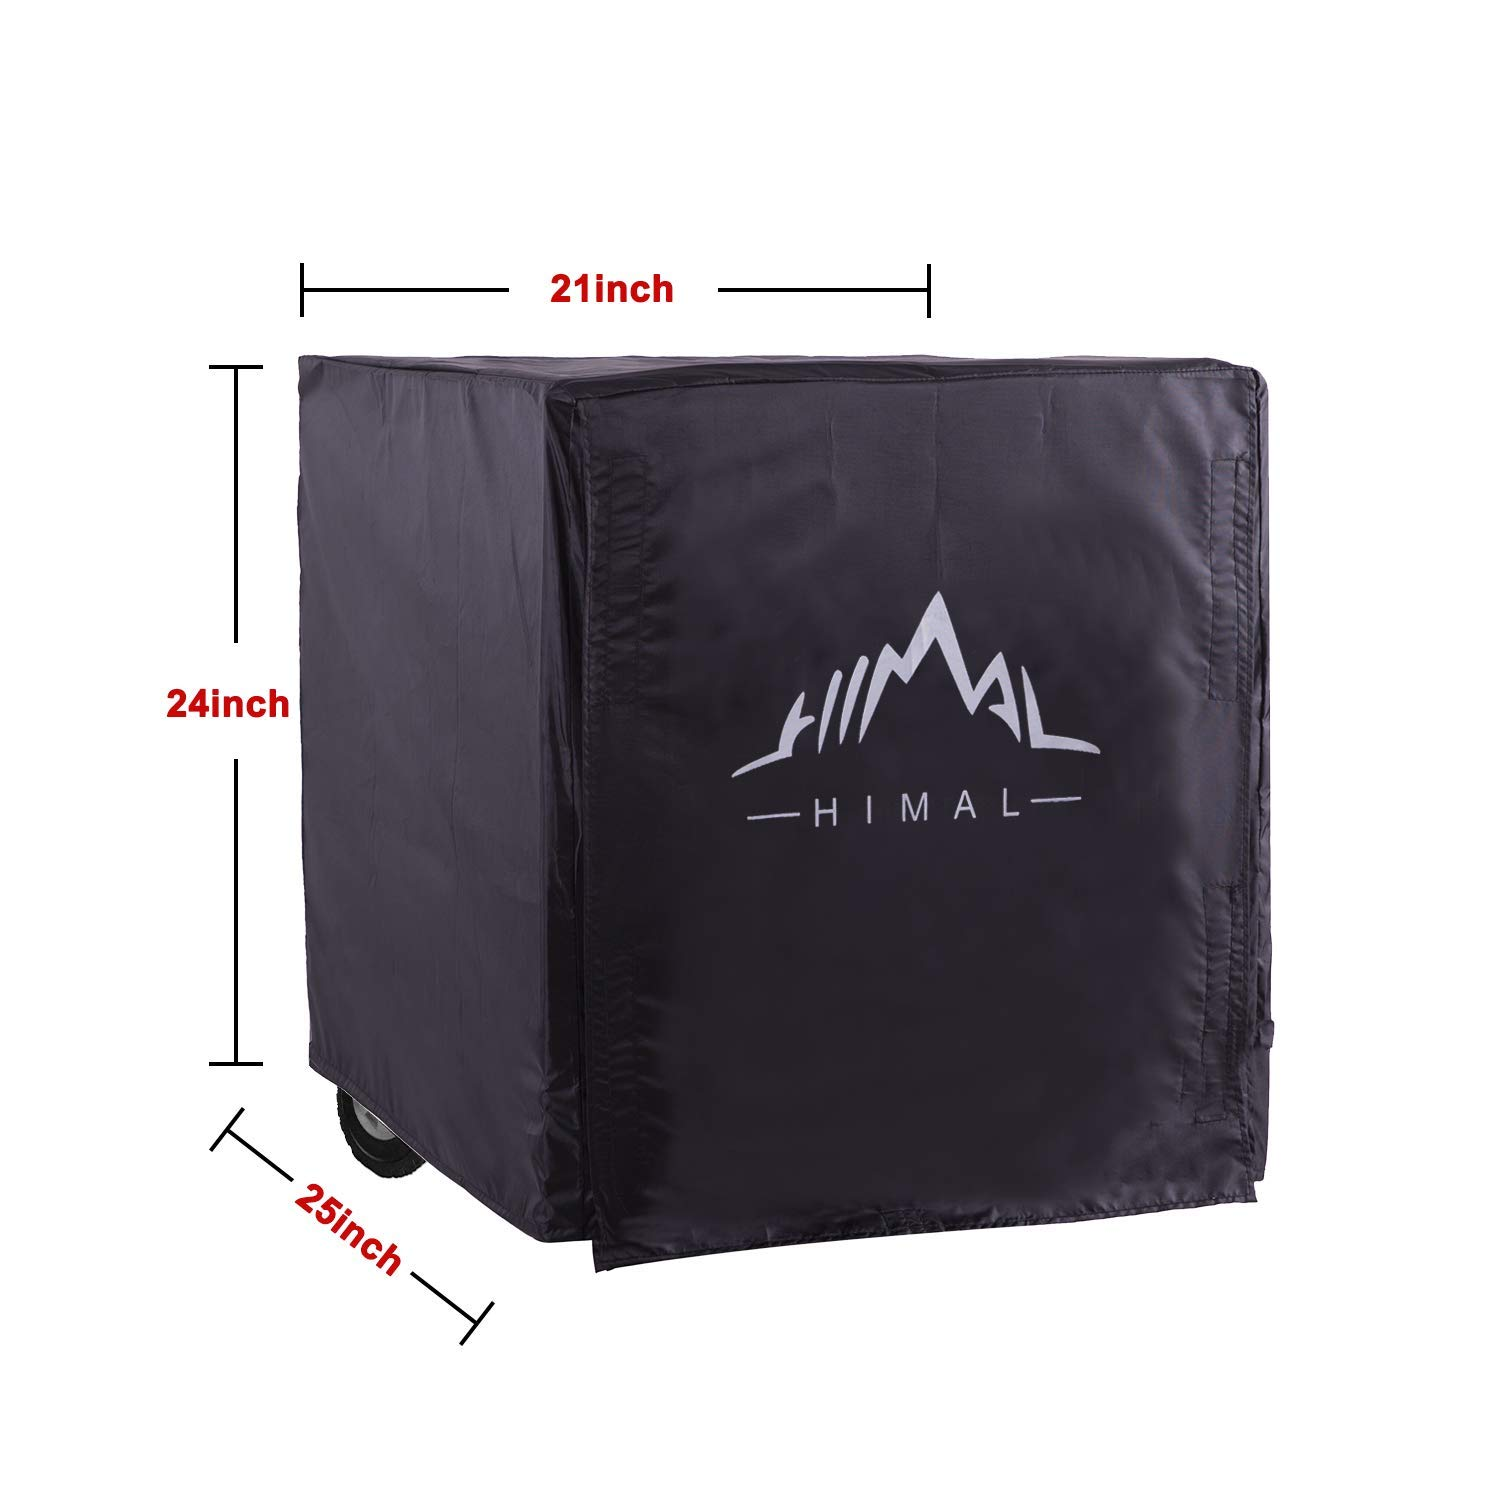 Himal Weather/UV Resistant Generator Cover 25 x 24 x 21 inch,for Universal Portable Generators 2200-5000 Watt, Black by Himal Outdoors (Image #2)